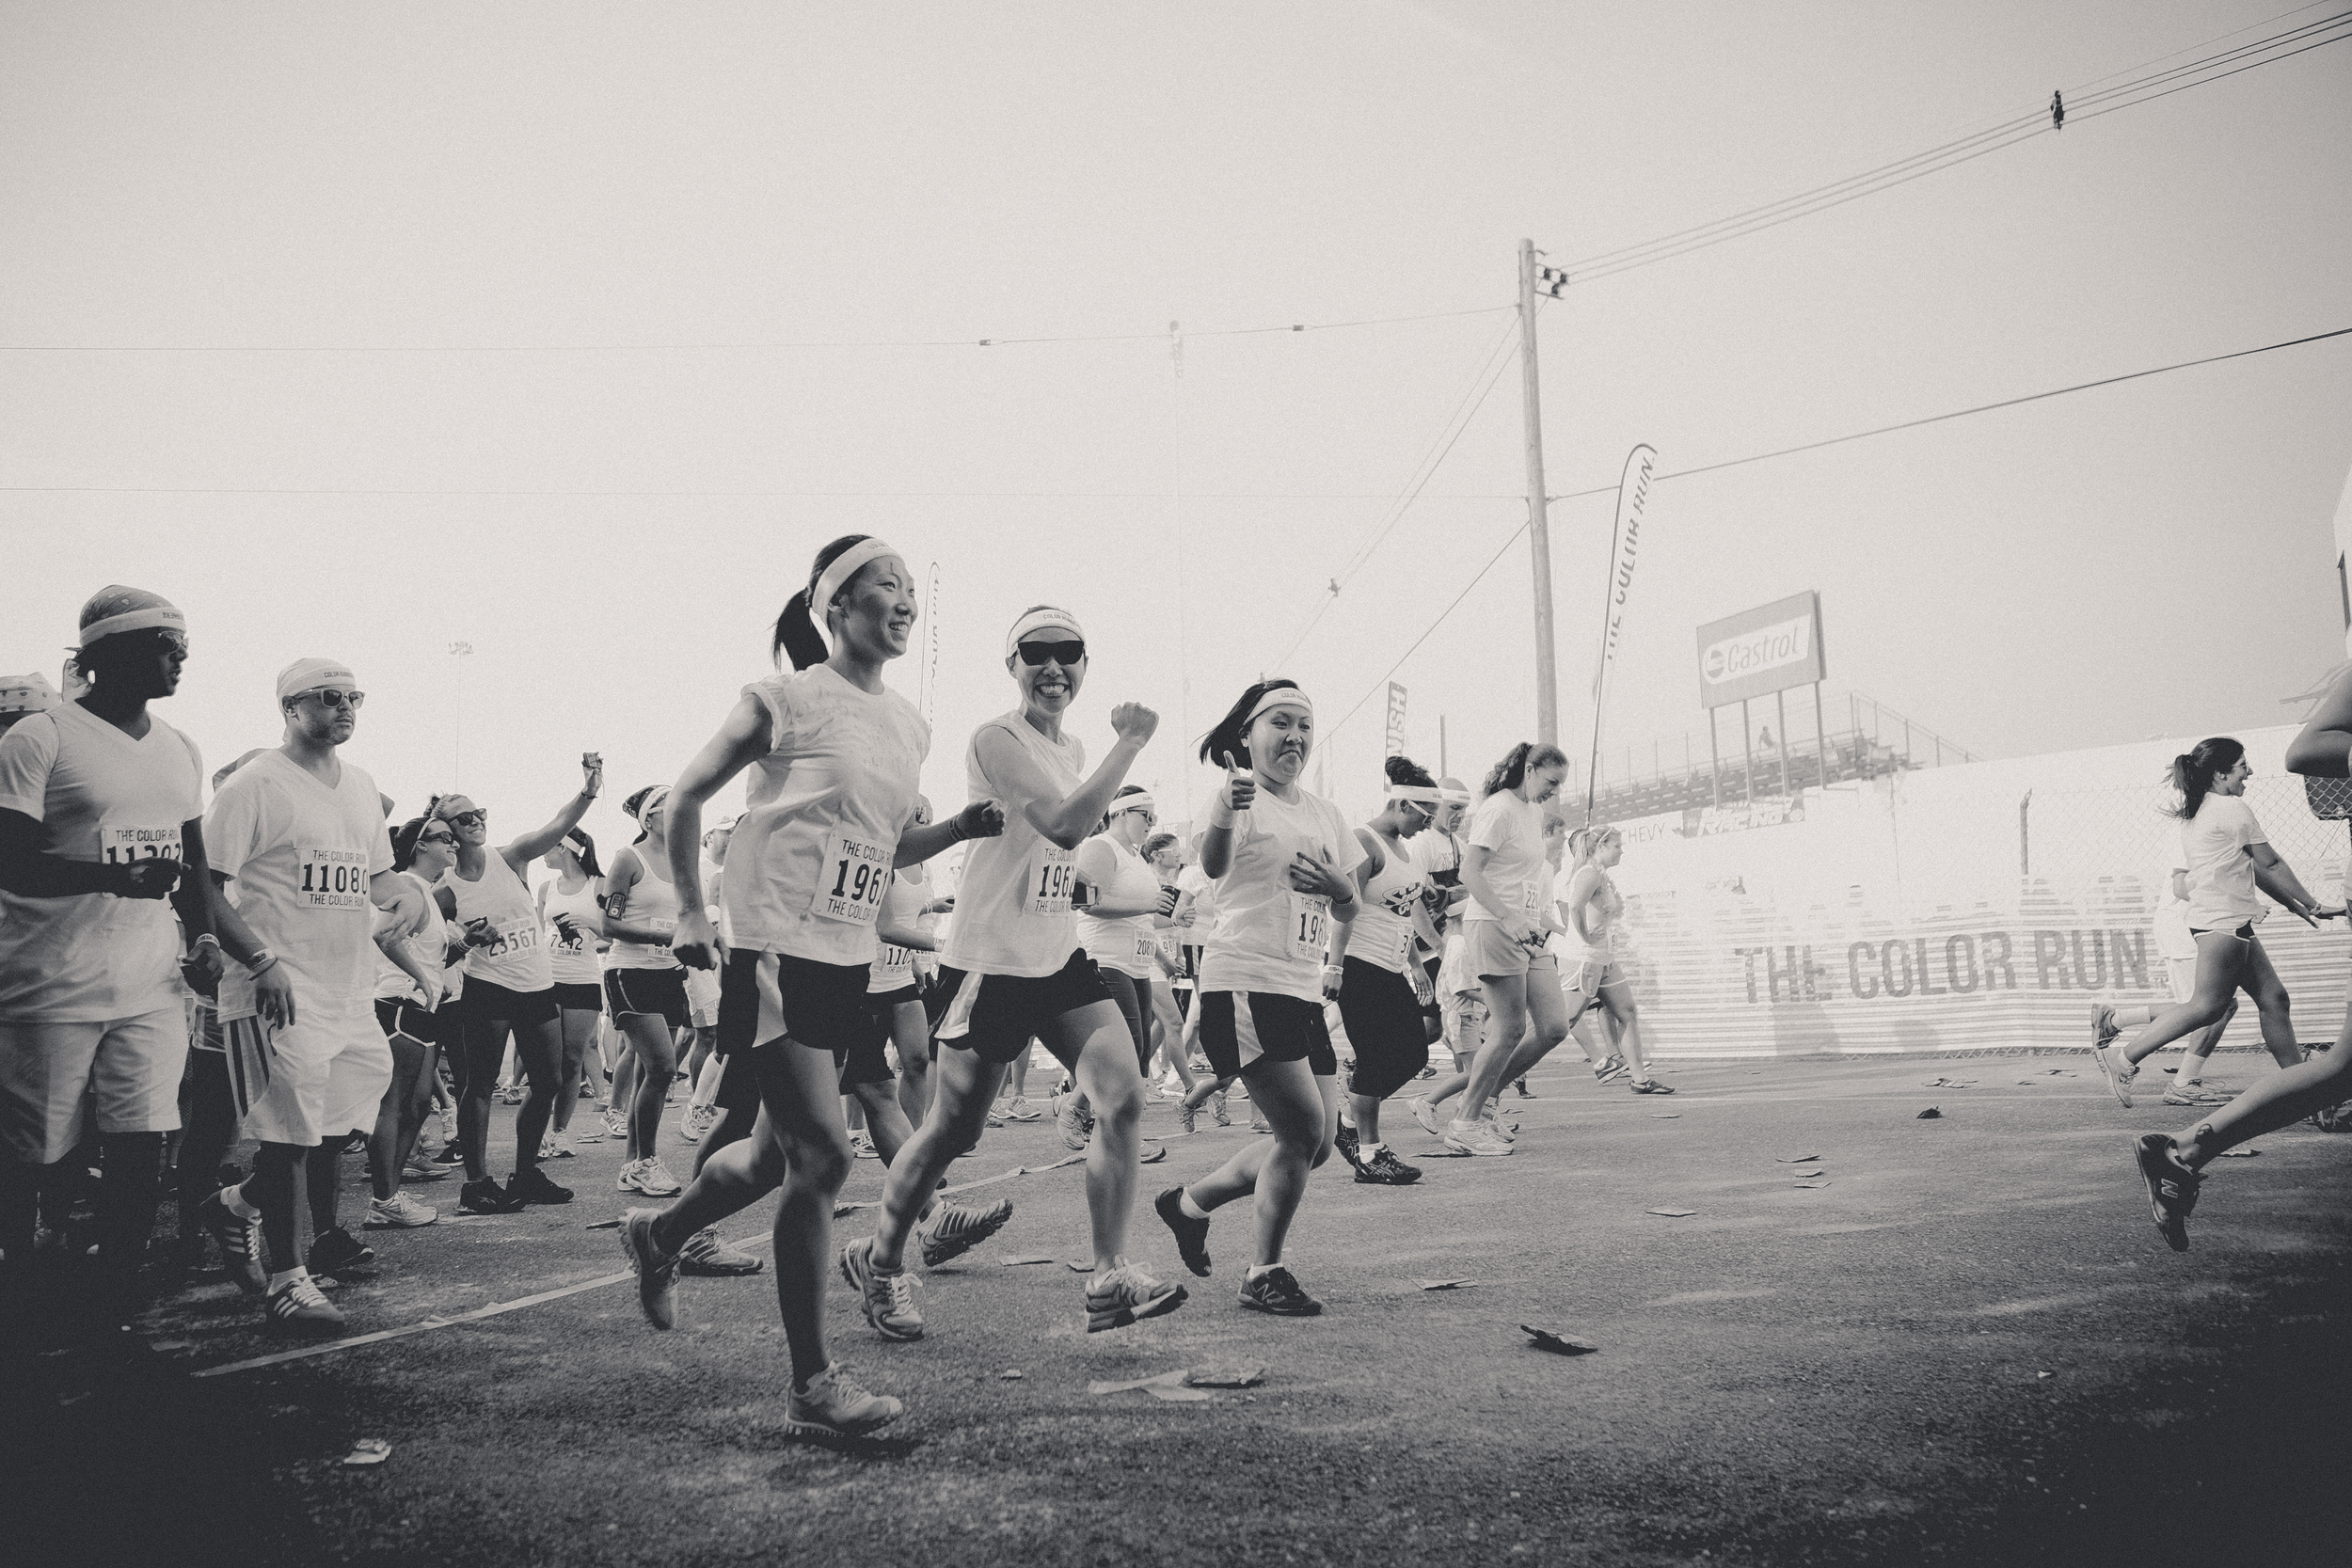 colorrun2012 (33 of 104).jpg